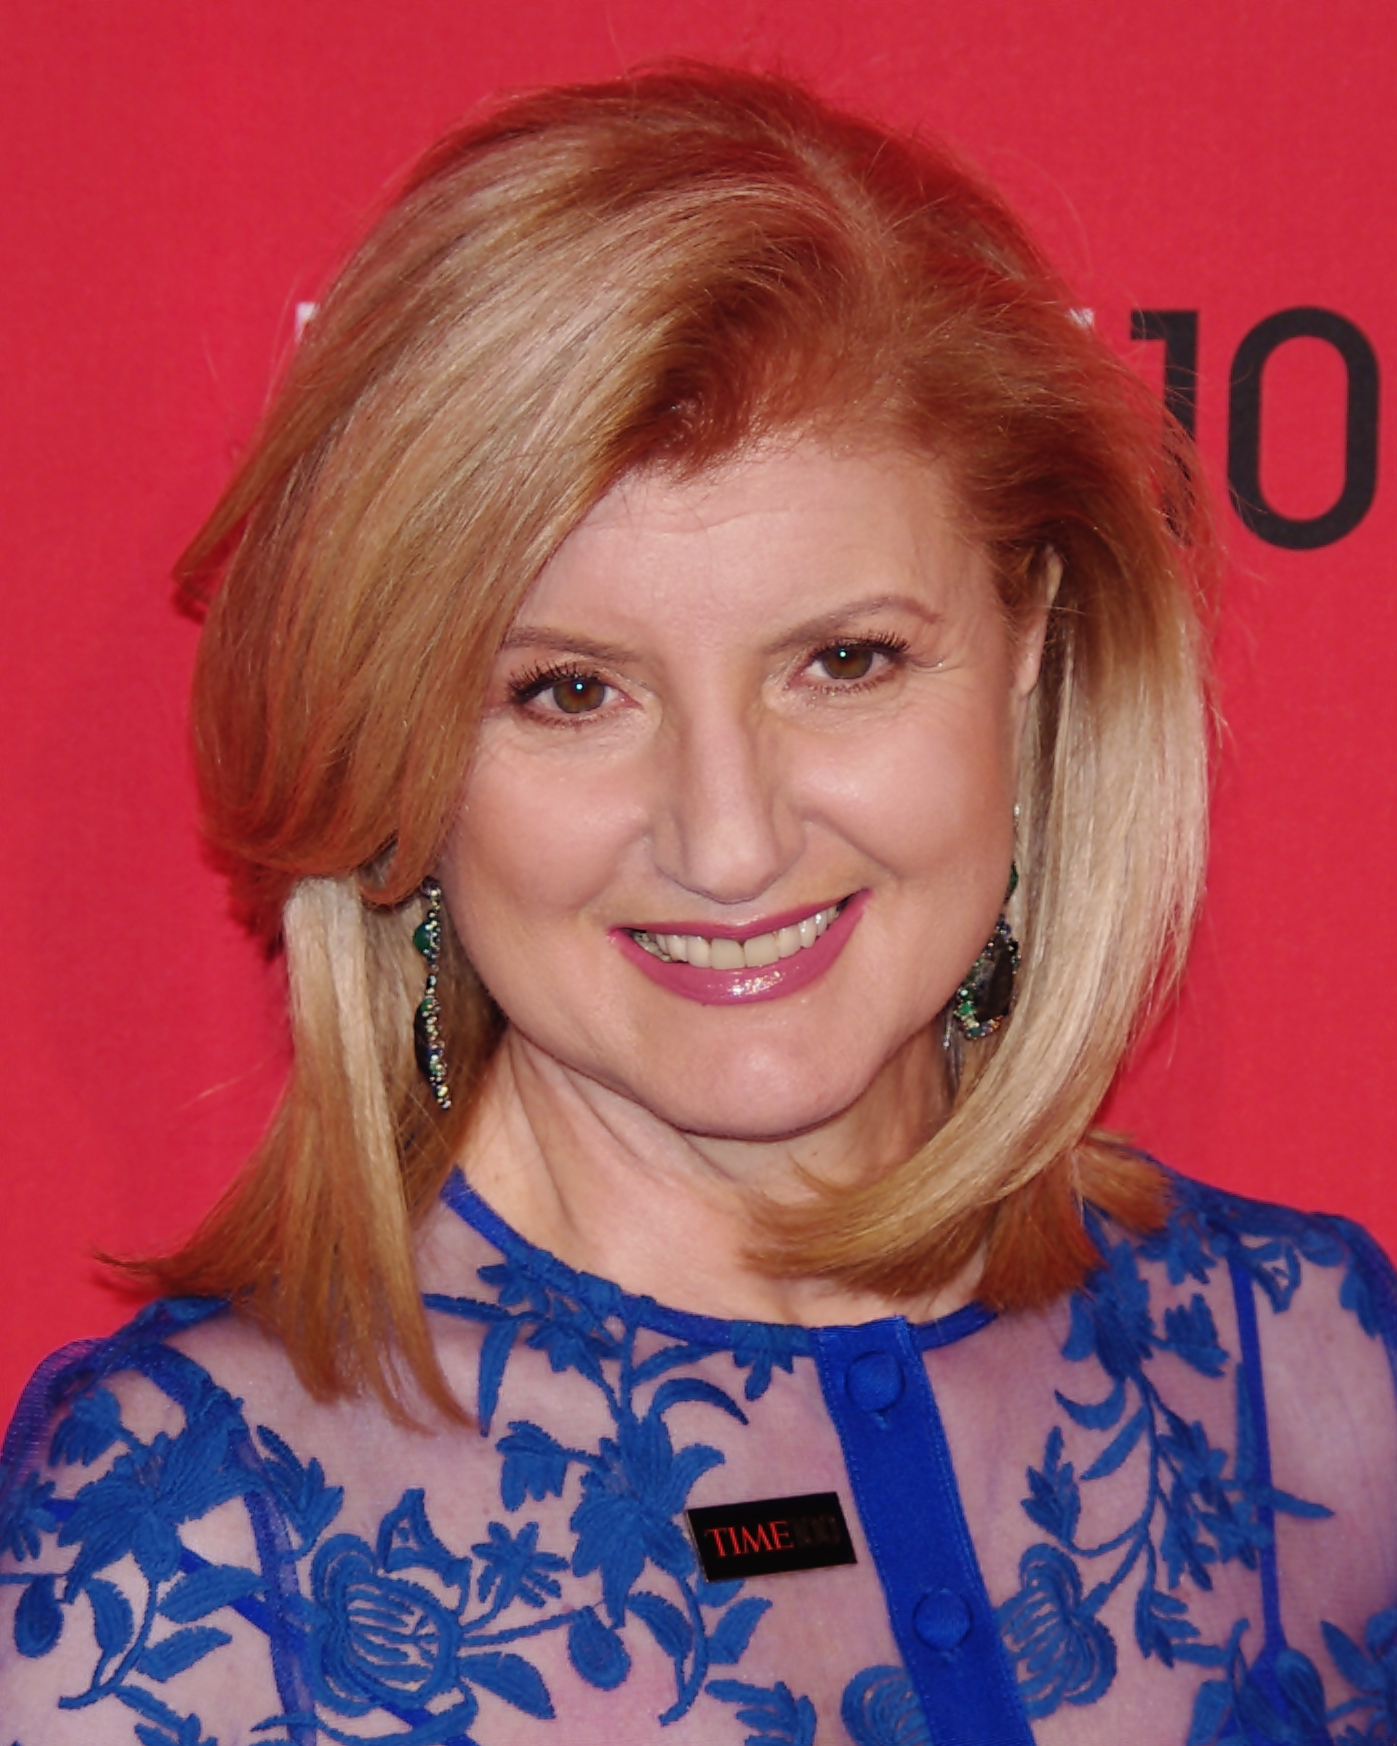 The 67-year old daughter of father Konstantinos Stassinopoulos and mother Elli Stassinopoulos, 178 cm tall Arianna Huffington in 2017 photo